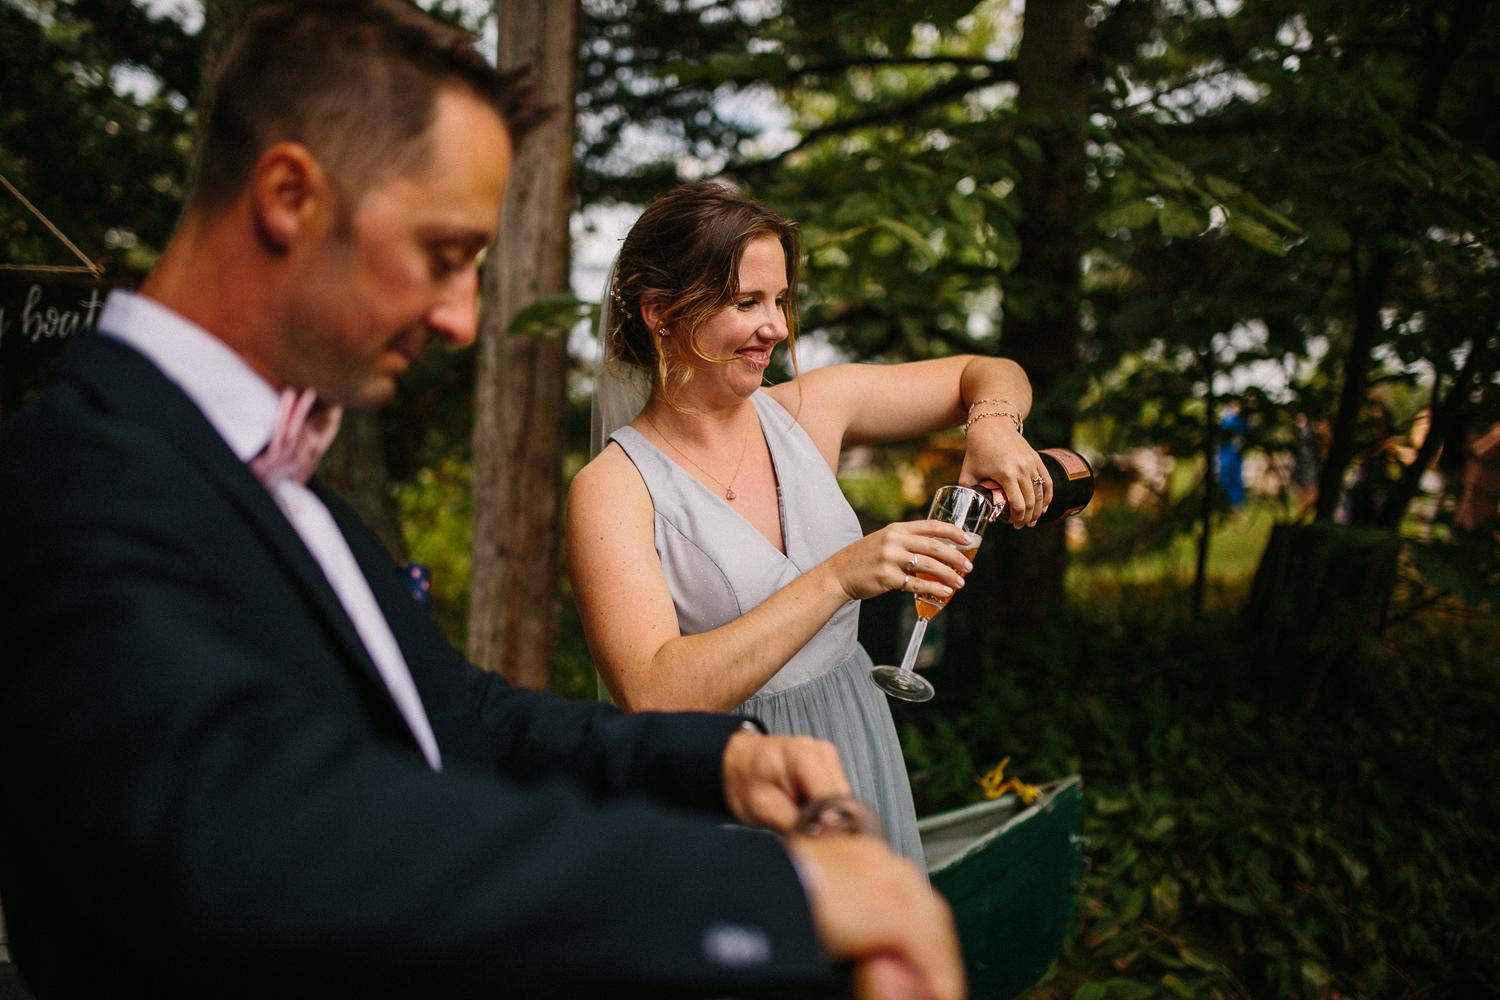 kerry ford photography - small intimate backyard rideau lake island wedding perth ontario-079.jpg